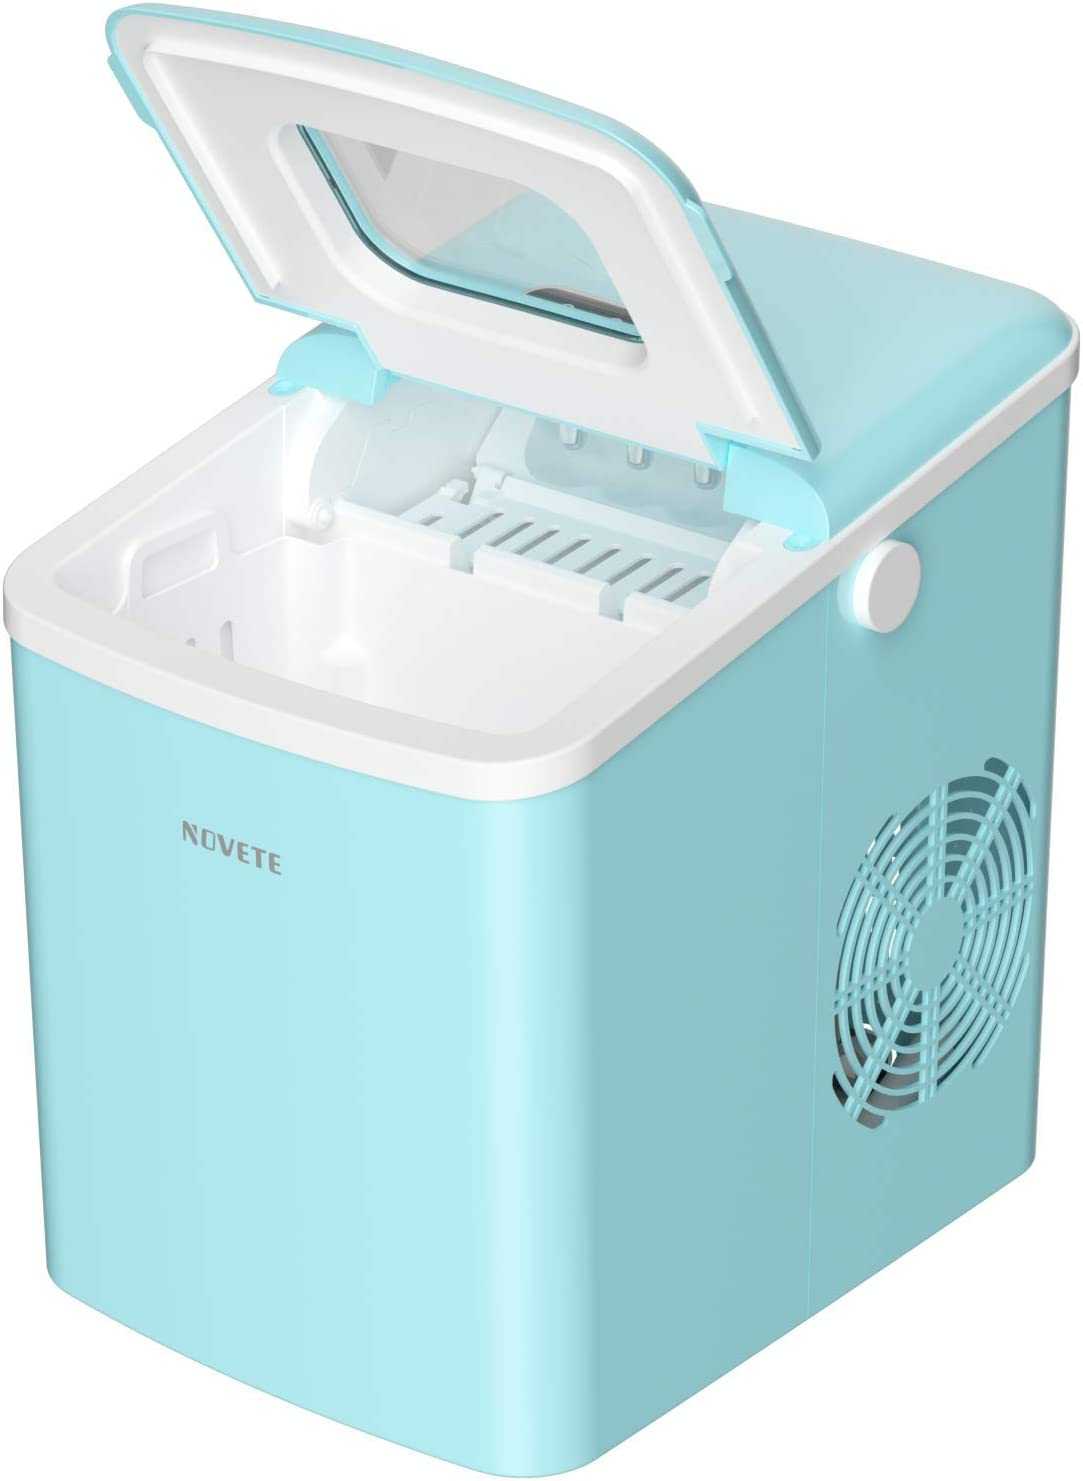 Ice Maker, NOVETE Portable Countertop Ice Maker Machine, 28.7 lbs Ice in 24 Hours, 9 Cubes Ready in 6 Minutes, Turquoise Home Mini Ice Machine with Ice Scoop and Basket, for Parties Mixed Drinks